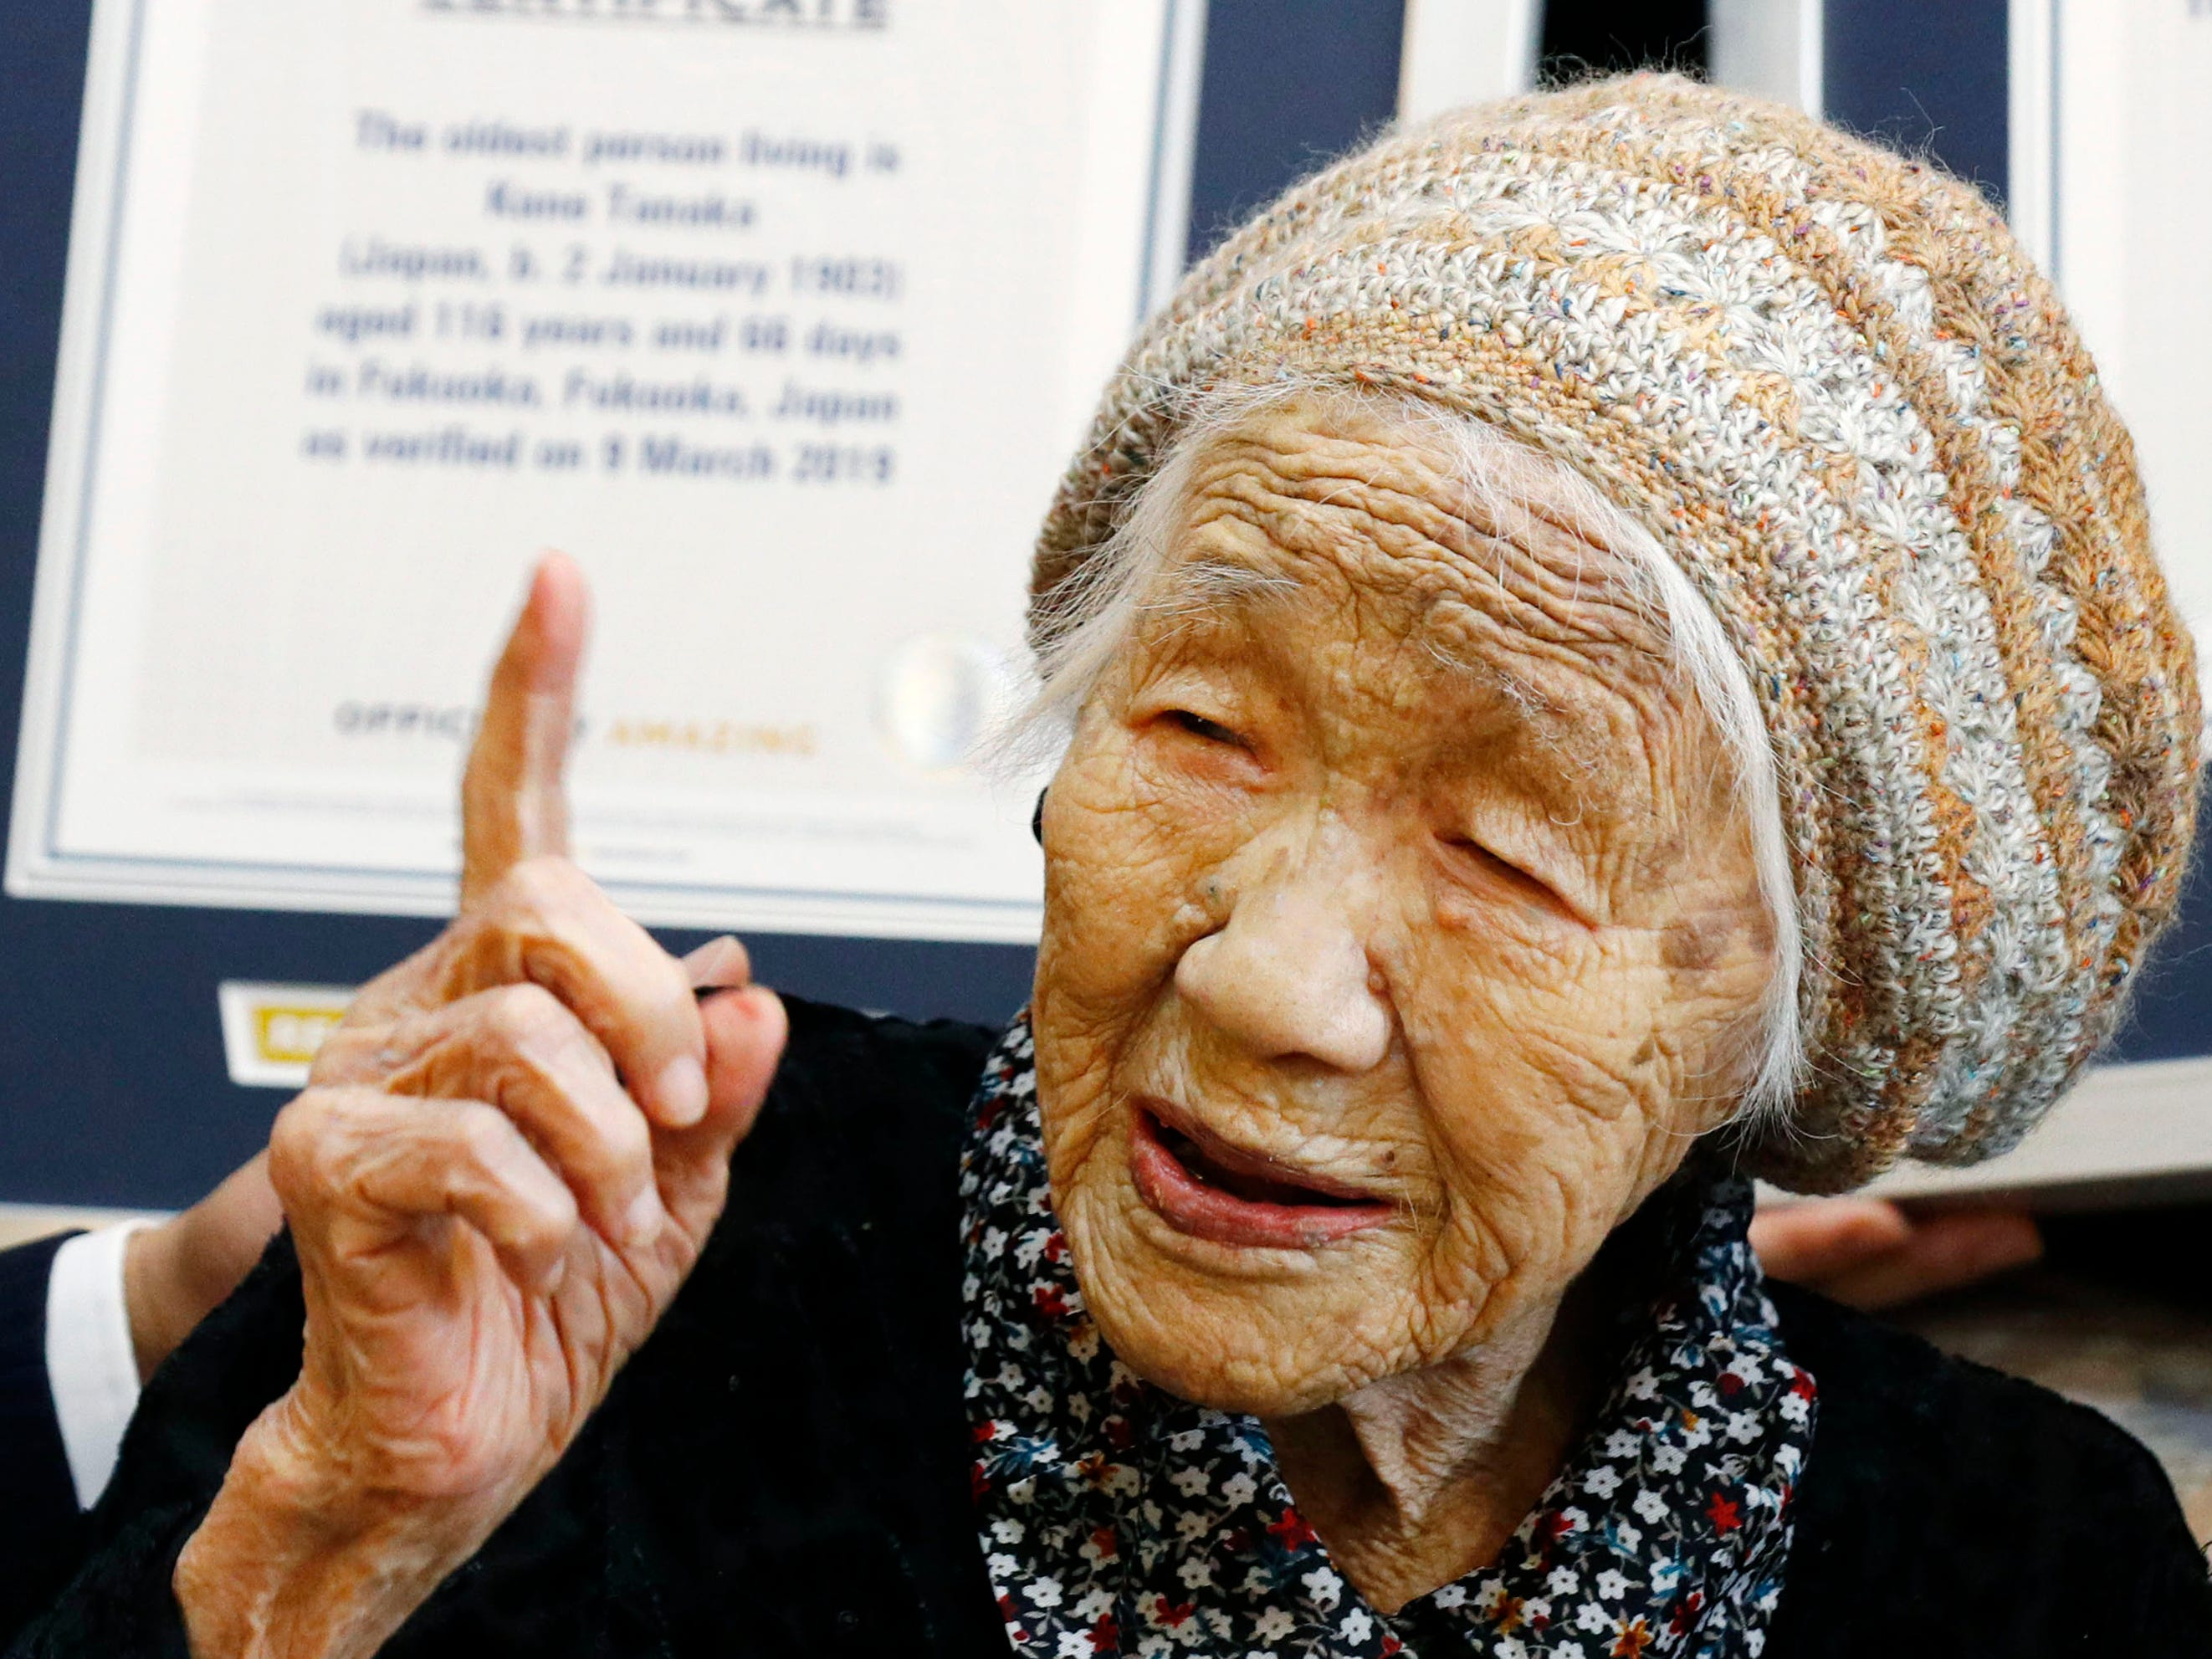 Kane Tanaka, a 116-year-old Japanese woman, gestures after receiving a Guinness World Records certificate, back, at a nursing home where she lives in Fukuoka, Japan on Saturday, March 9, 2019.